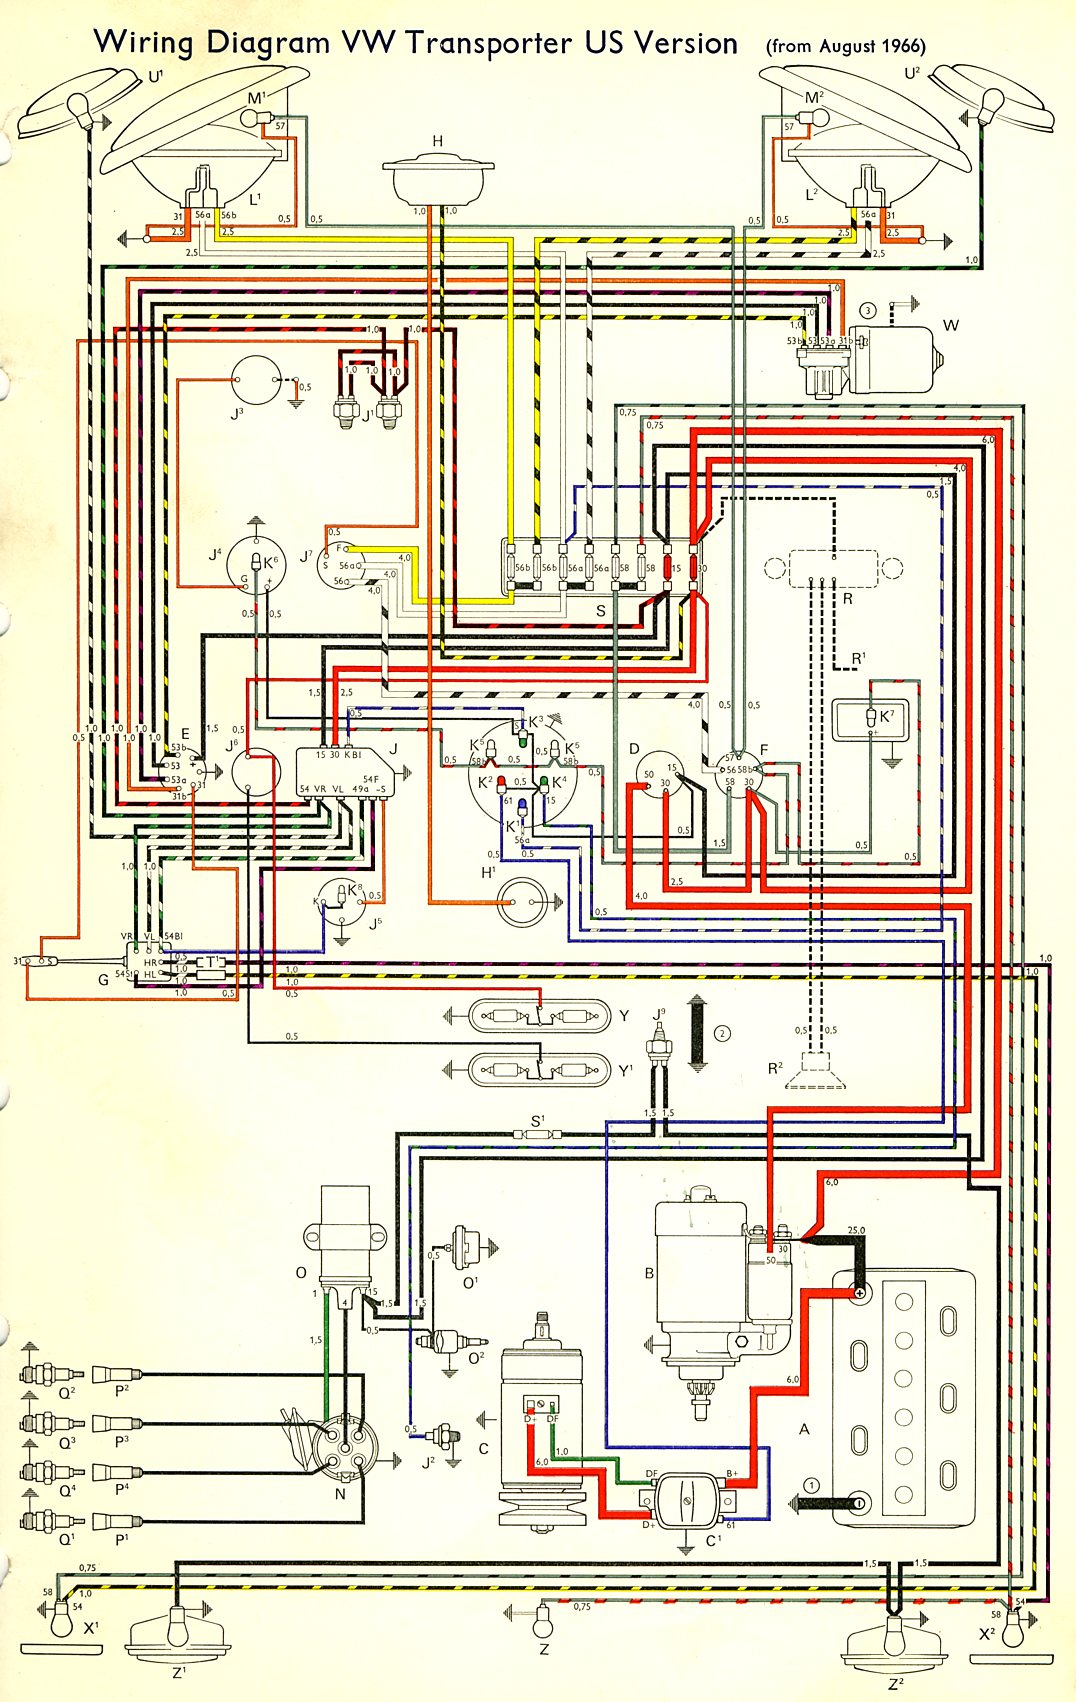 bus_67_USA 28 [ 1971 vw bus wiring diagram ] 1971 vw bus turn signal 74 VW Beetle Wiring Diagram at crackthecode.co